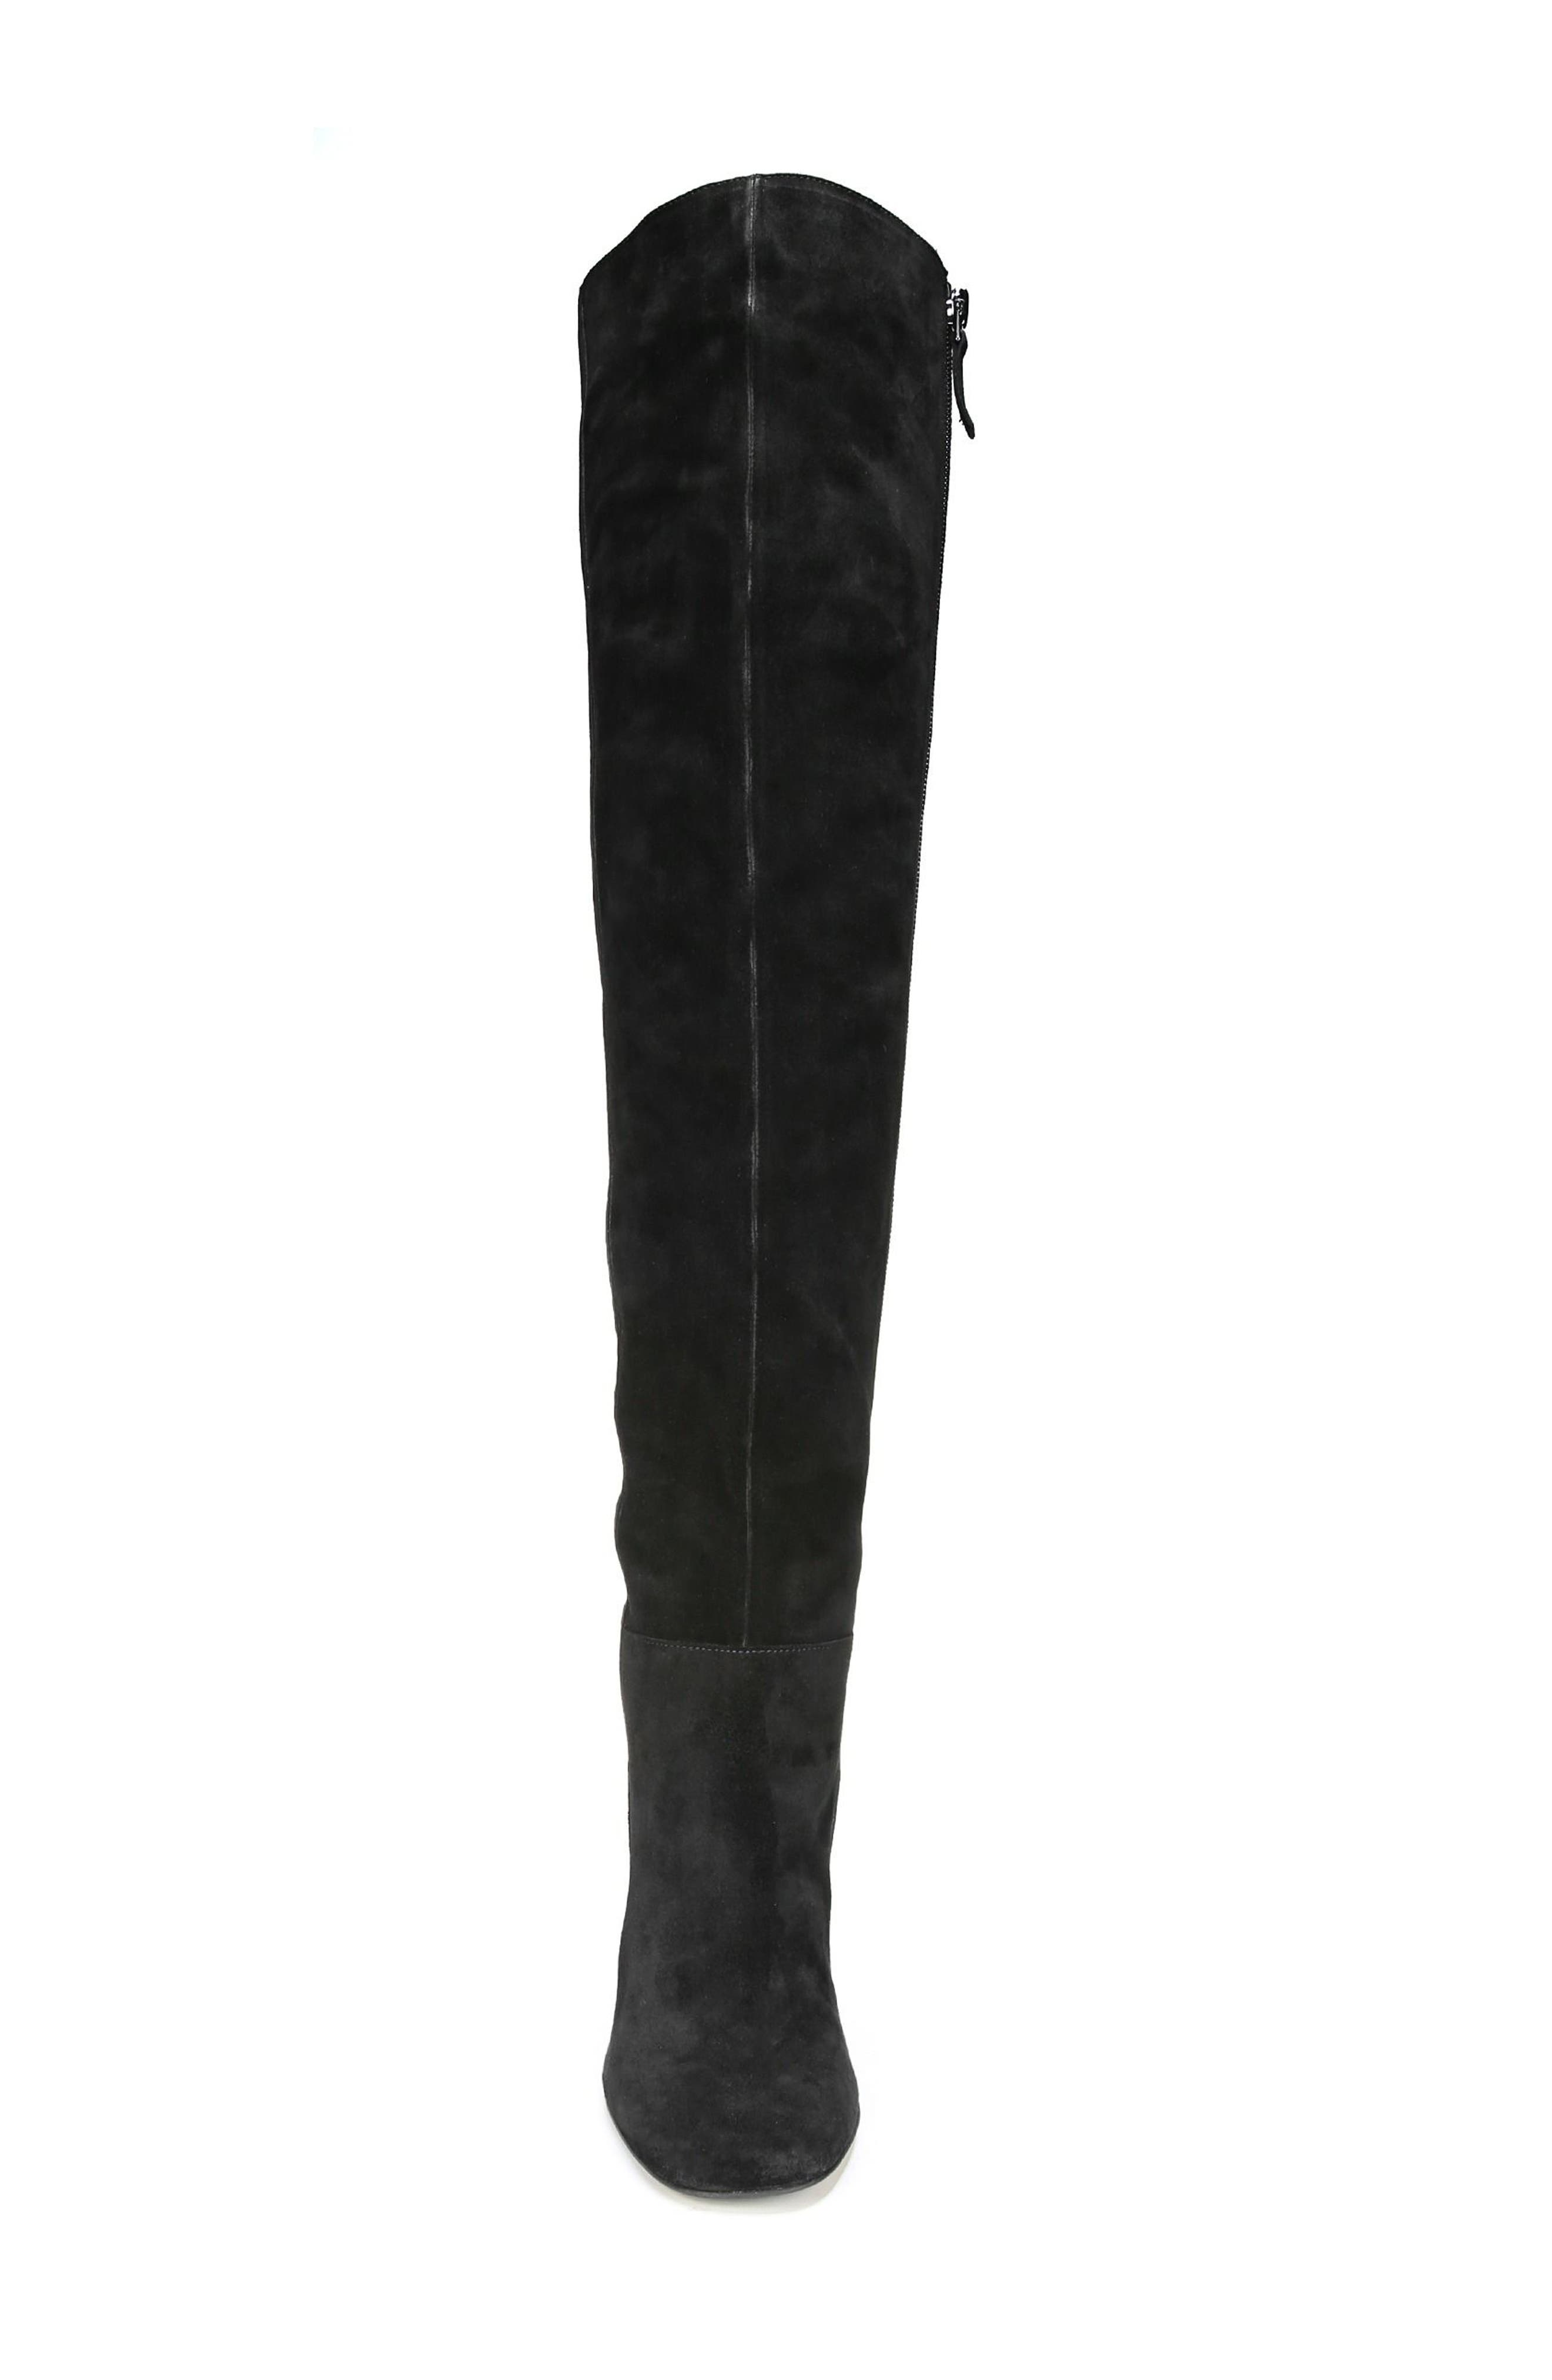 Laurel Over the Knee Boot,                             Alternate thumbnail 4, color,                             002